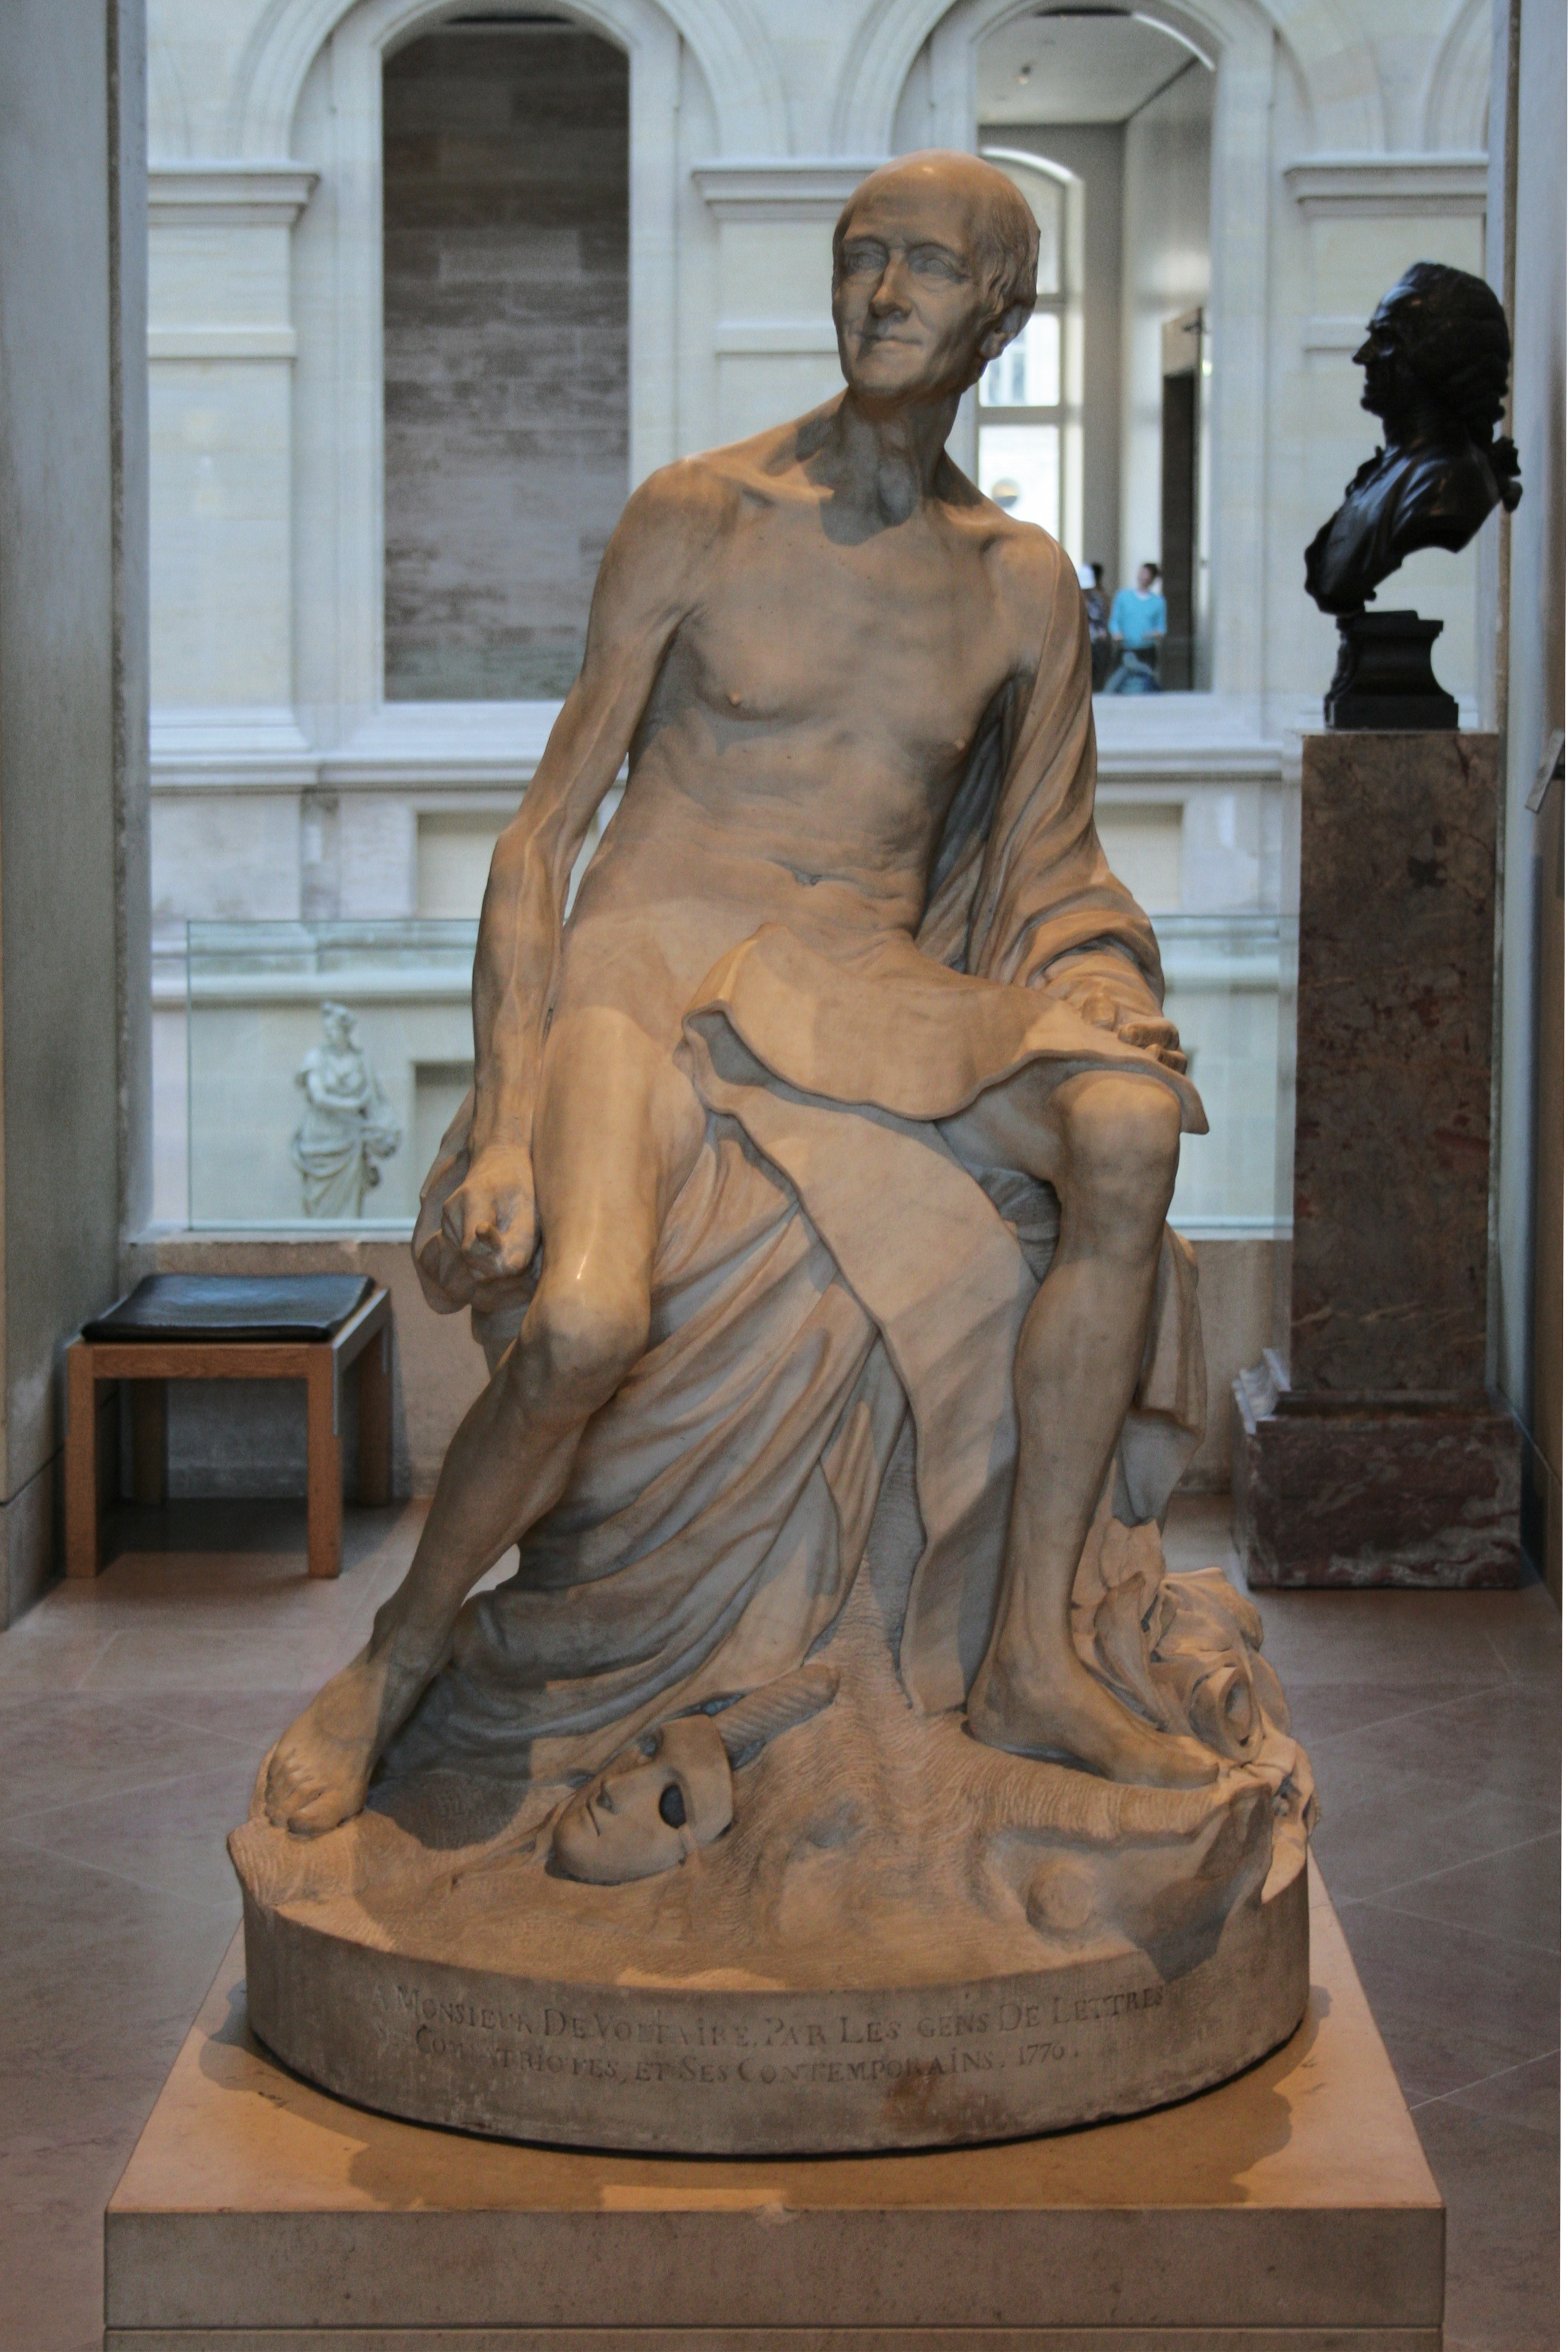 Marmor, 150 cm × 89 cm × 77 cm, Paris, Musée du Louvre, Inv.-Nr. Ent. 1962.1 (Leihgabe des Institut de France.)<br>